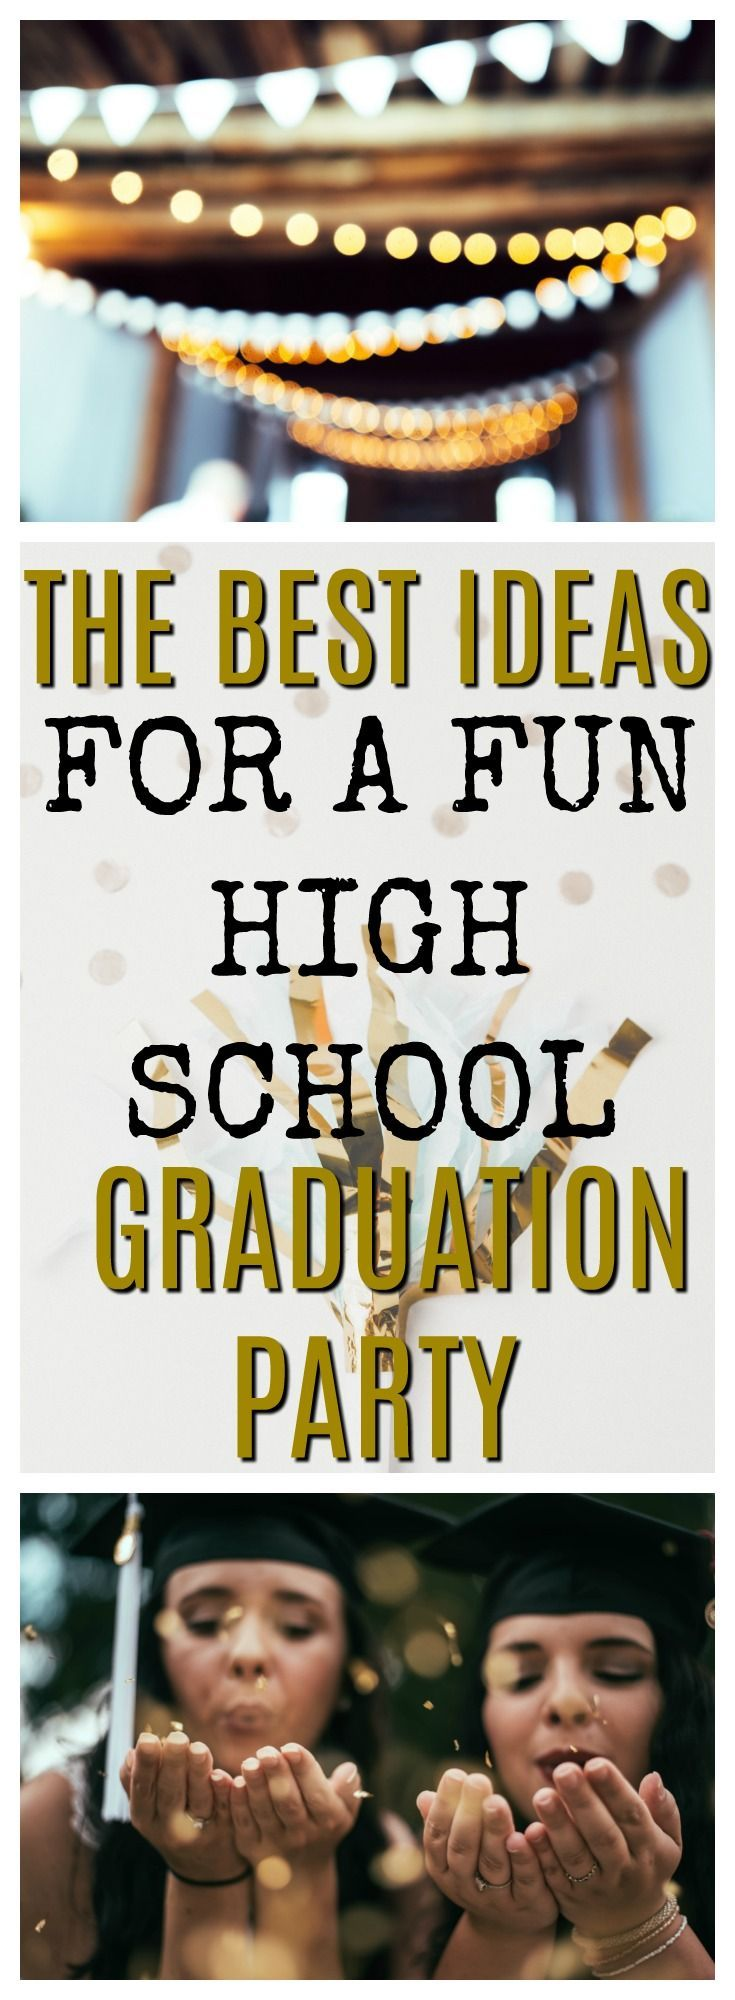 Graduation Party Ideas 2019: How to Celebrate [step-by-step]